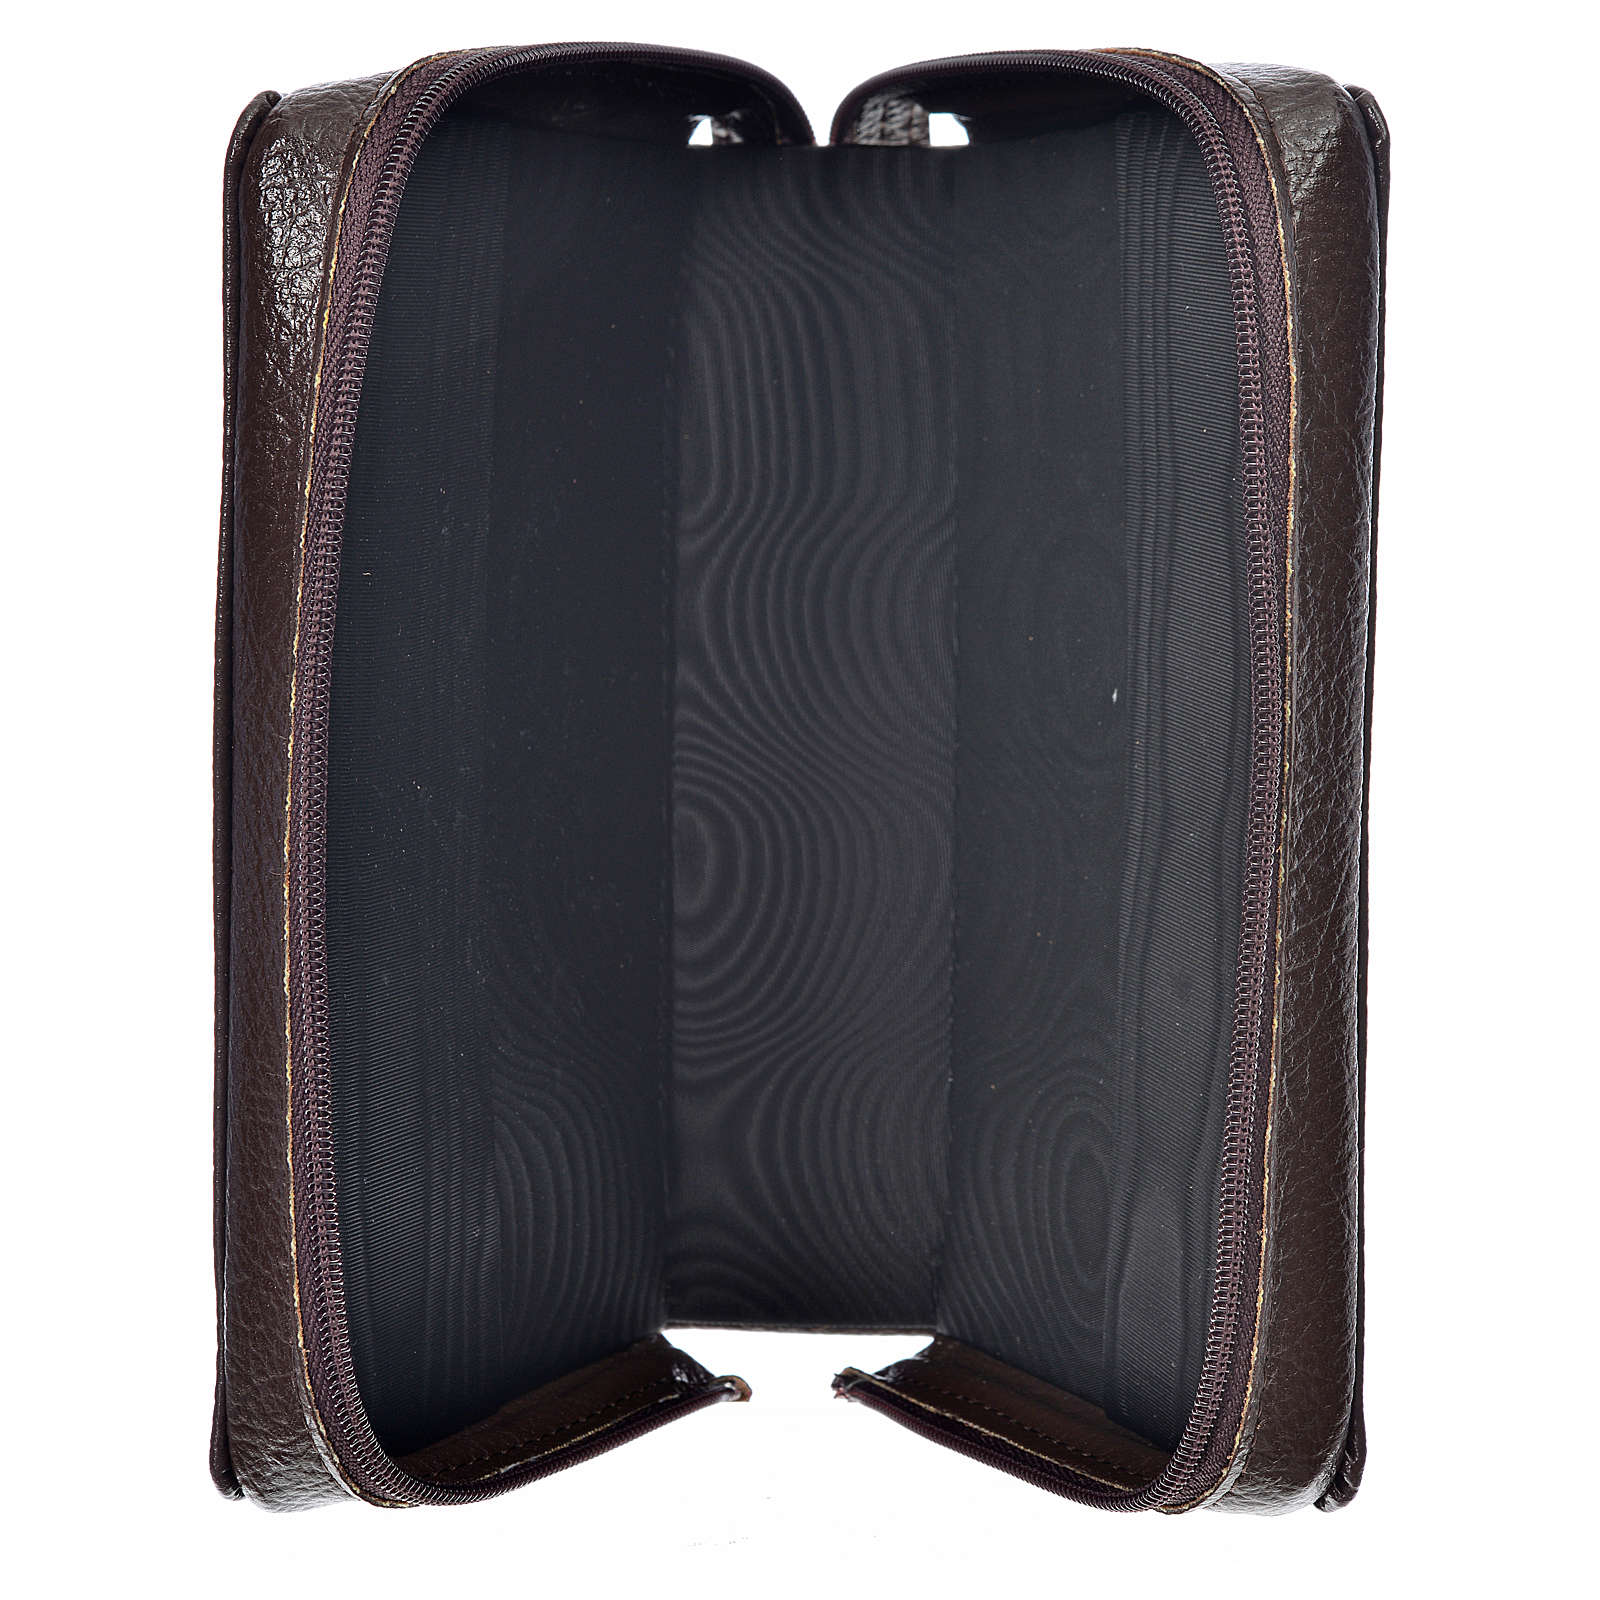 Morning & Evening prayer cover dark brown bonded leather with image of Christ Pantocrator 4